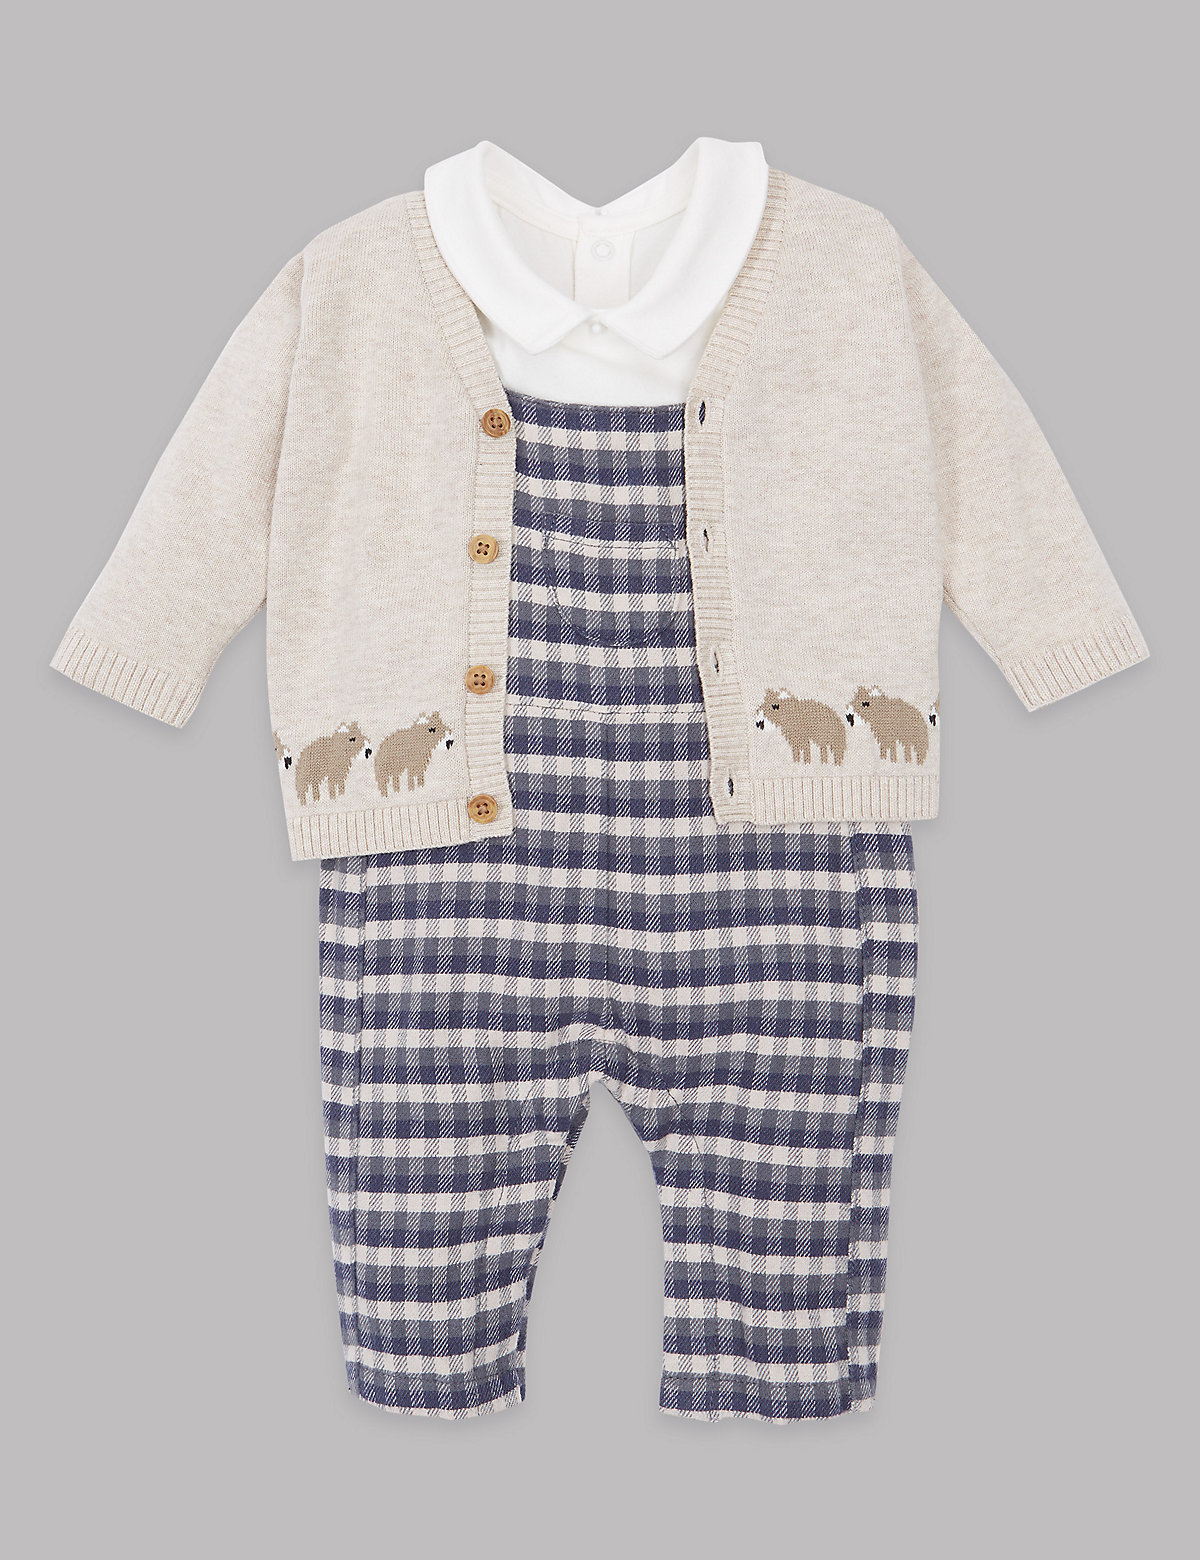 Autograph 3 Piece Bodysuit & Cardigan with Dungaree Outfit